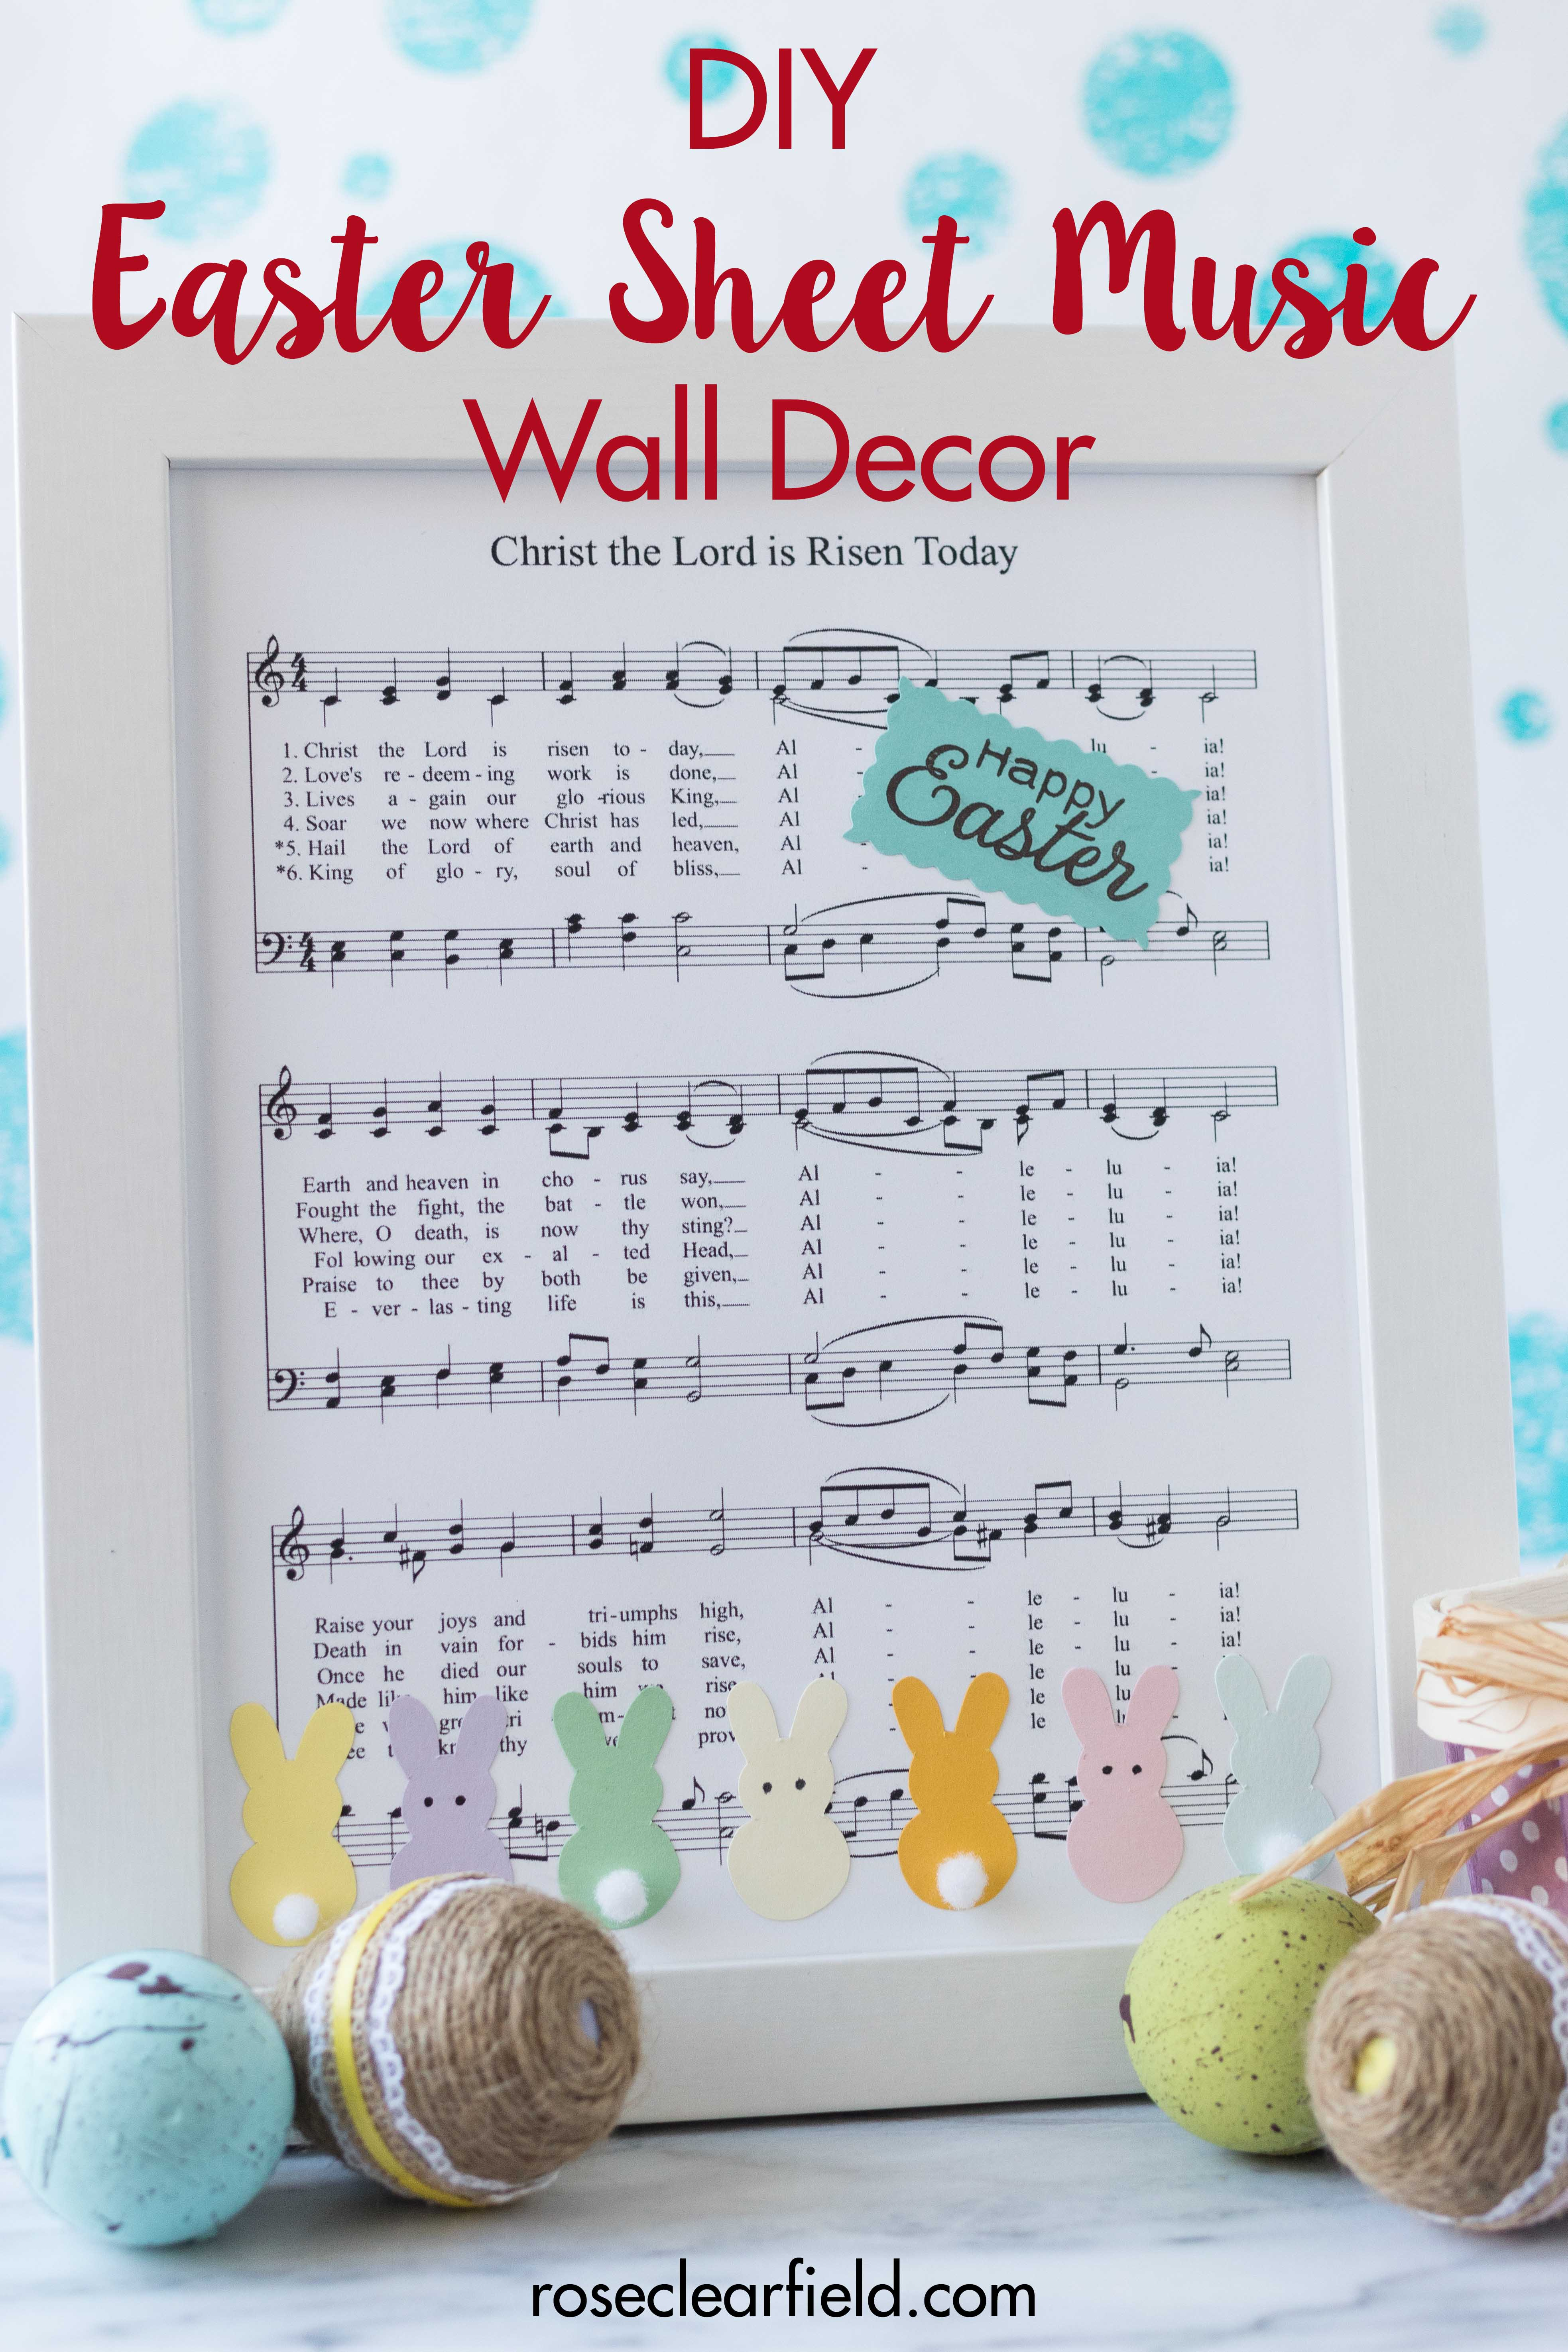 Create your own DIY Easter sheet music wall decor. This simple soft pastel piece will complete your Easter decorations with ease! #Easter #DIY #sheetmusic #walldecor | https://www.roseclearfield.com